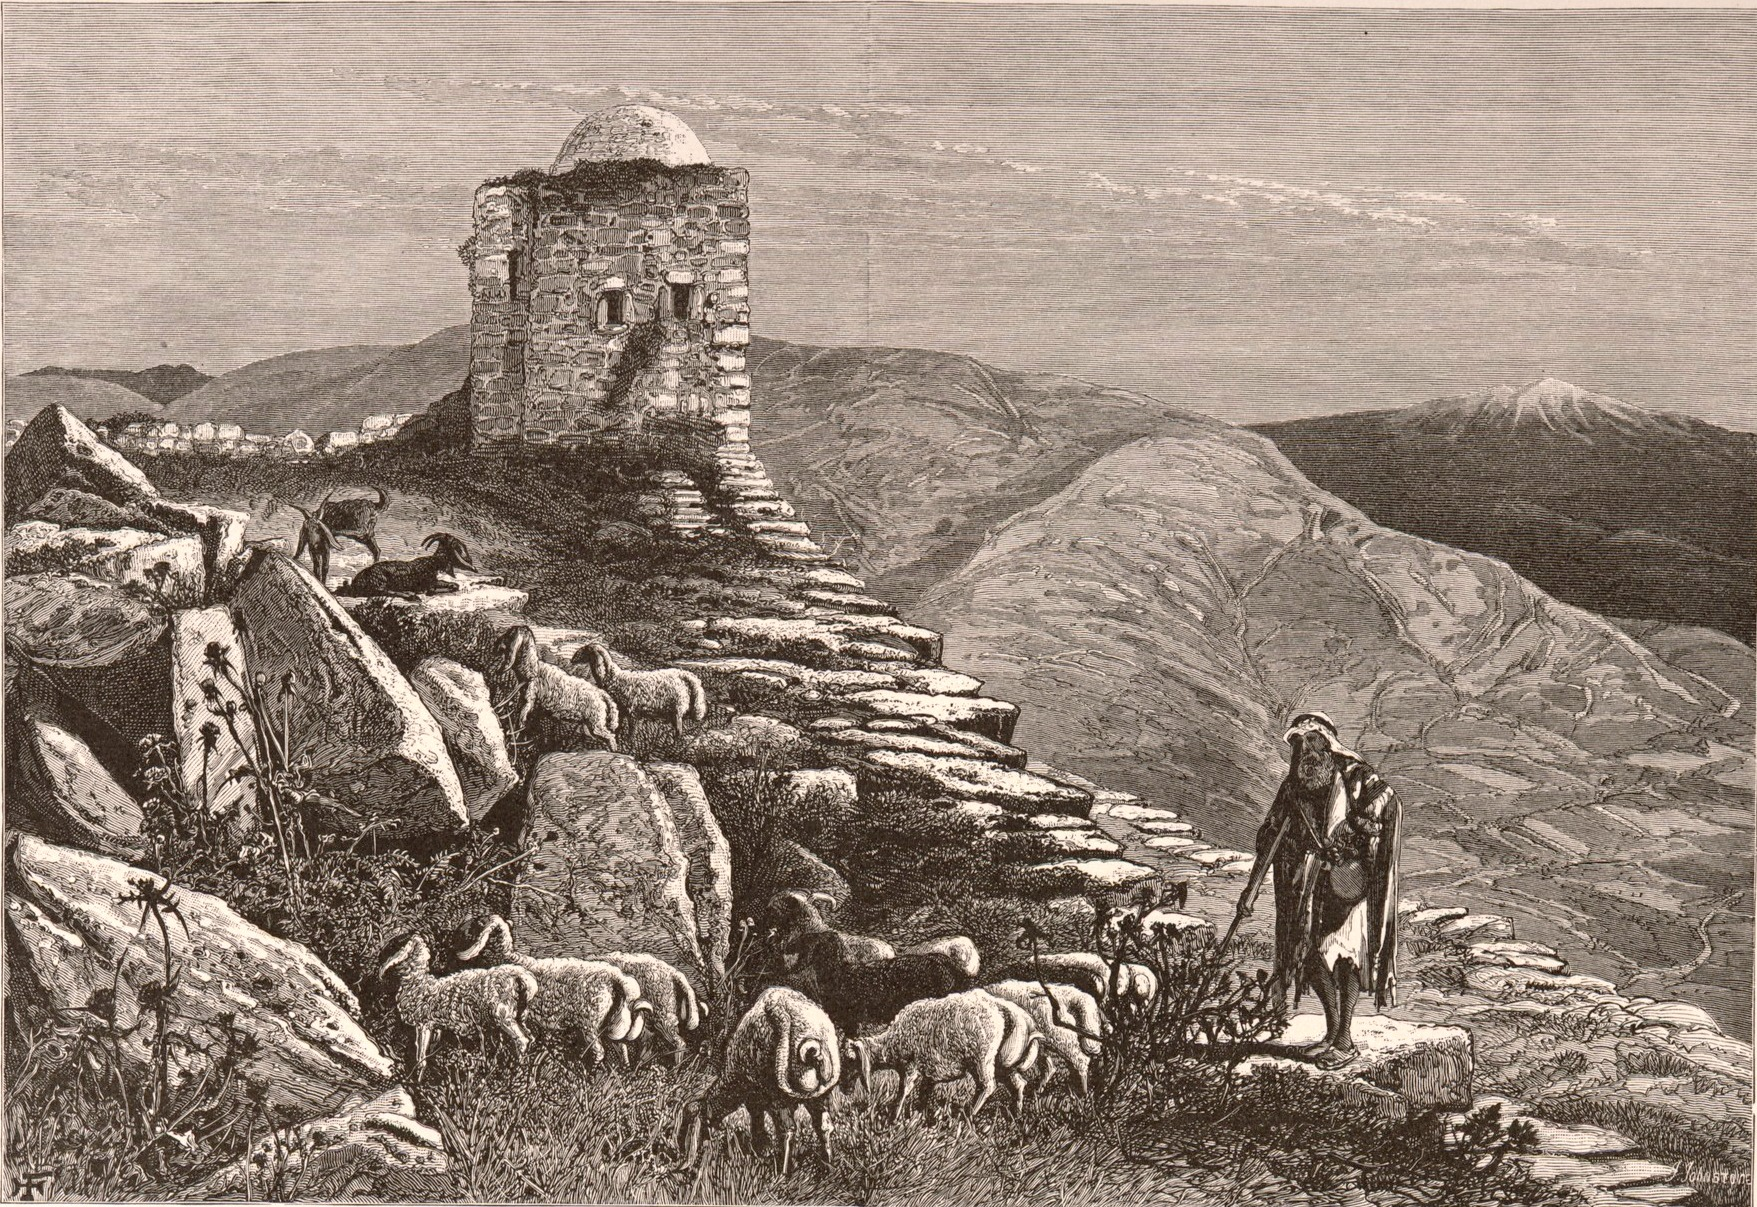 A structure on Mount Gerizim, a site associated with blessings in this week's Torah portion, seen in an 1881 illustration by Henry Fenn.